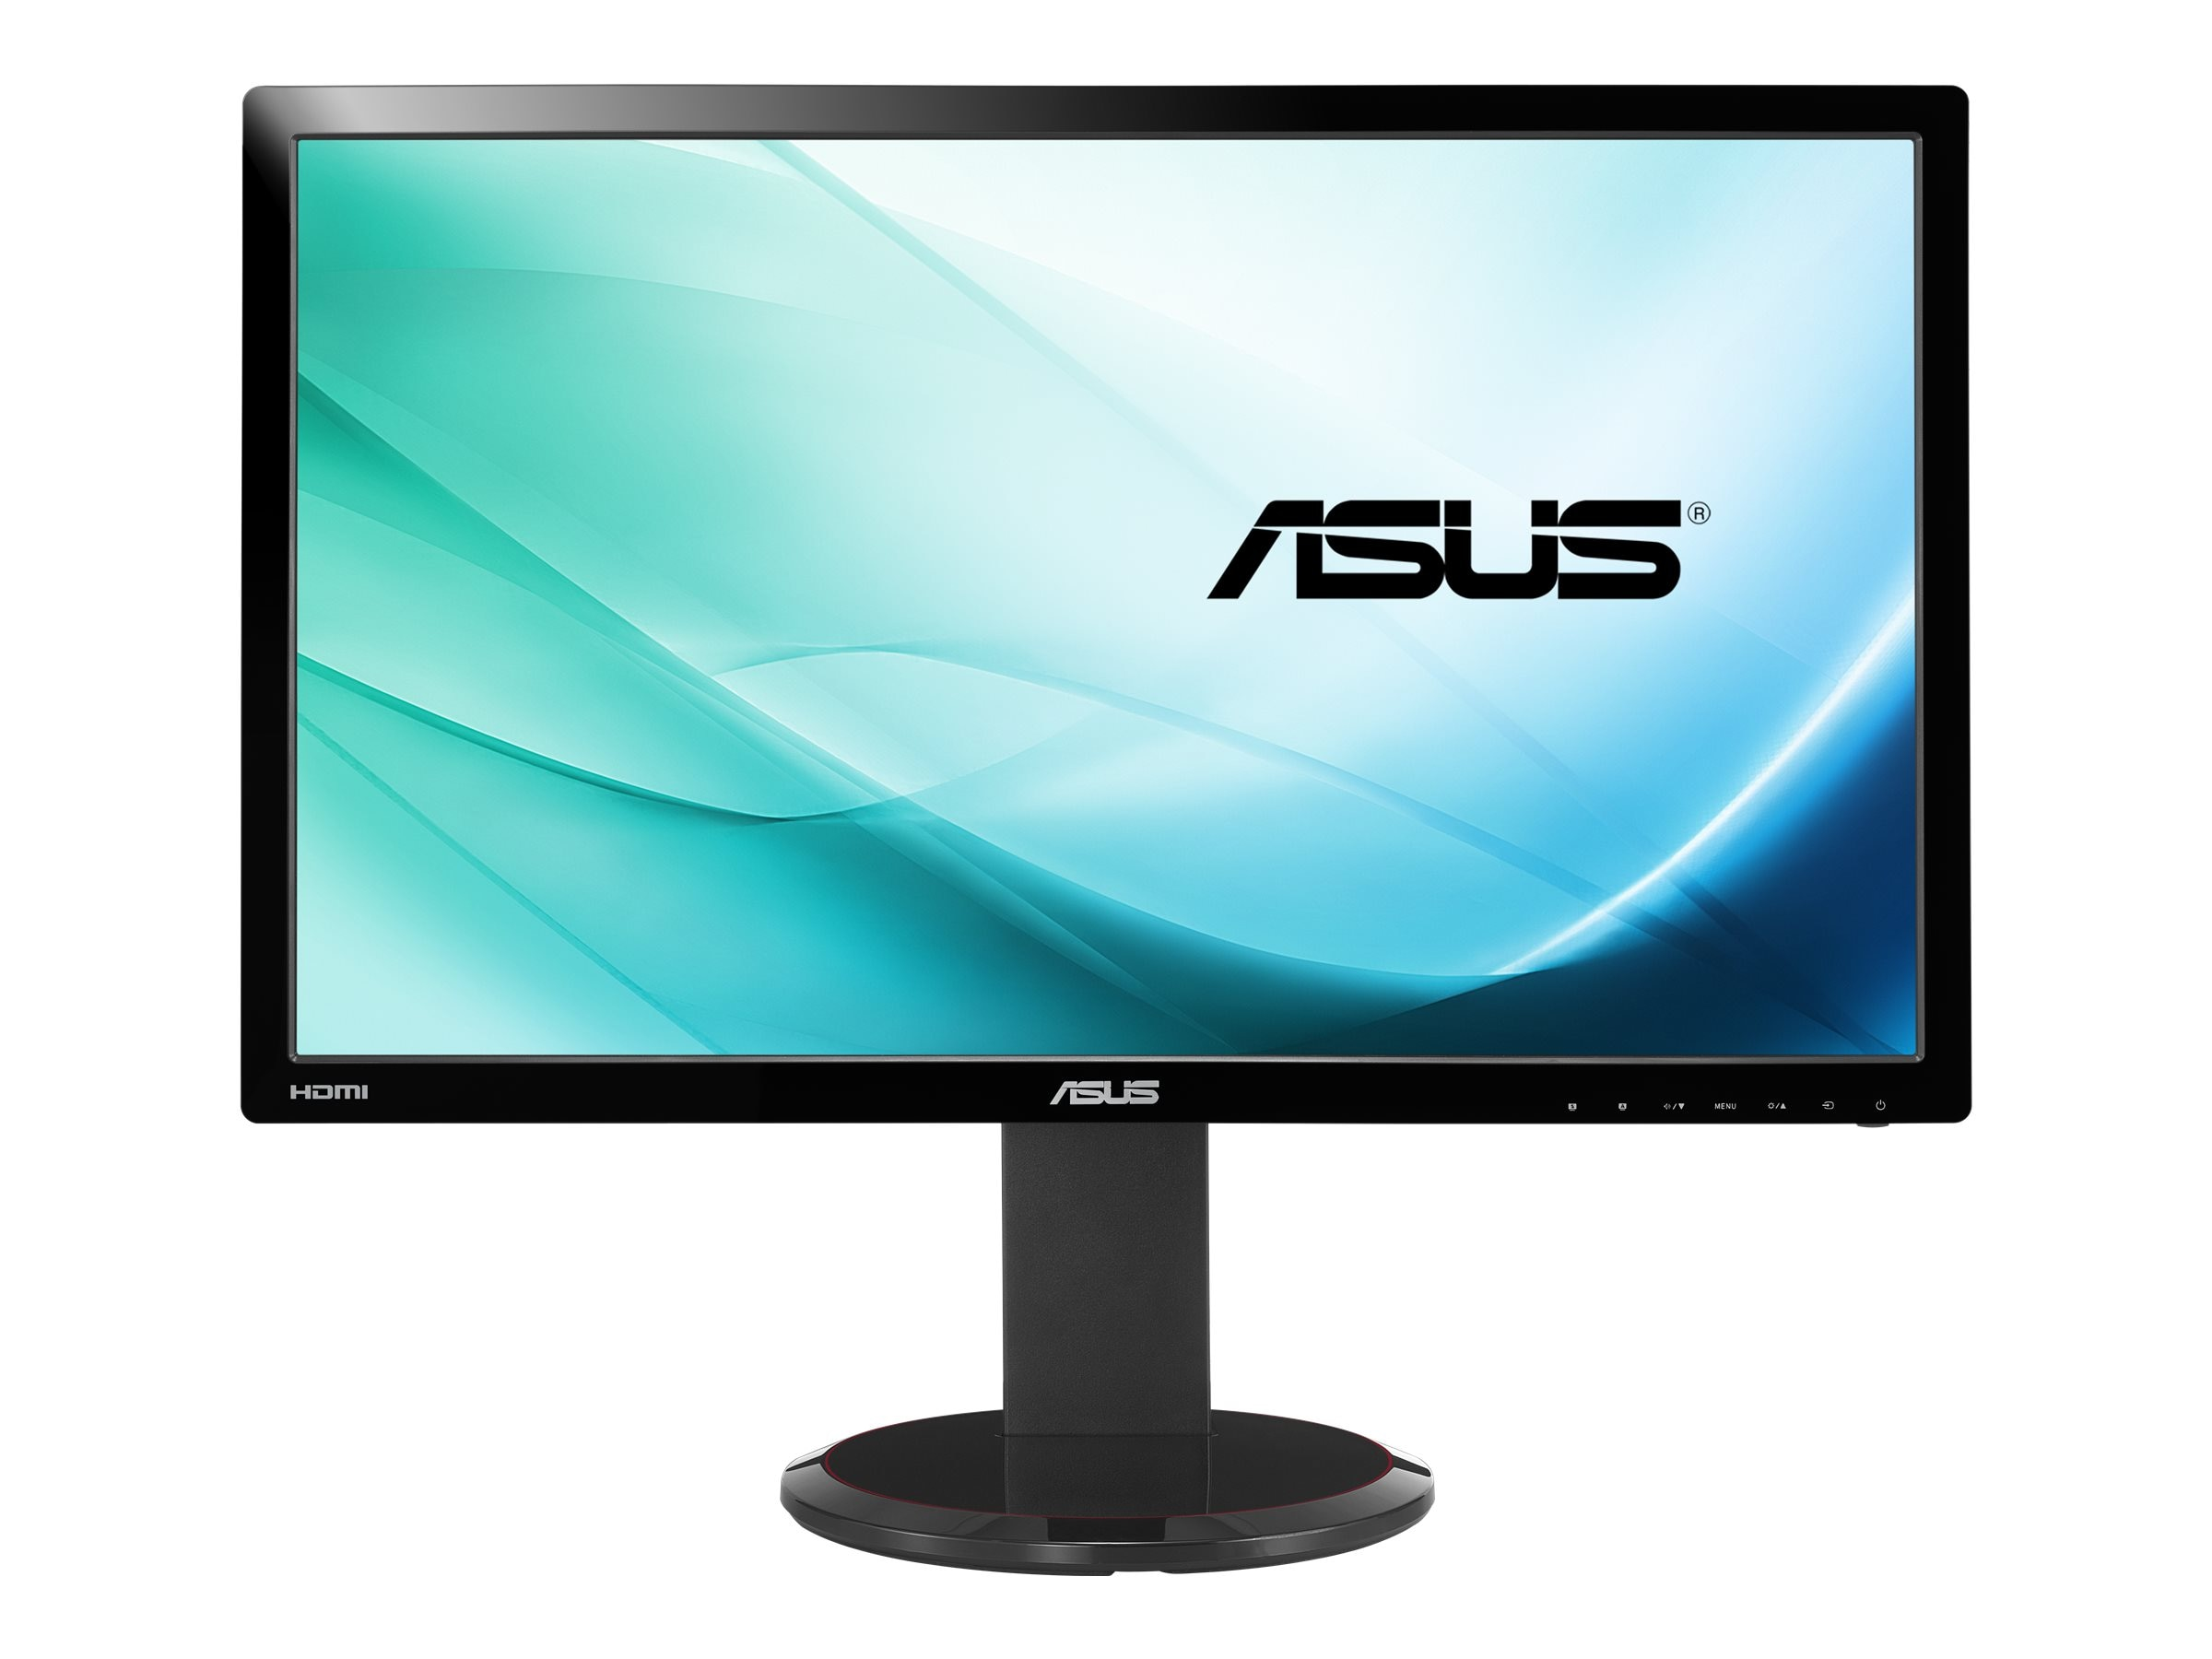 Asus 27 VG278HV Full HD LED-LCD Monitor, Black